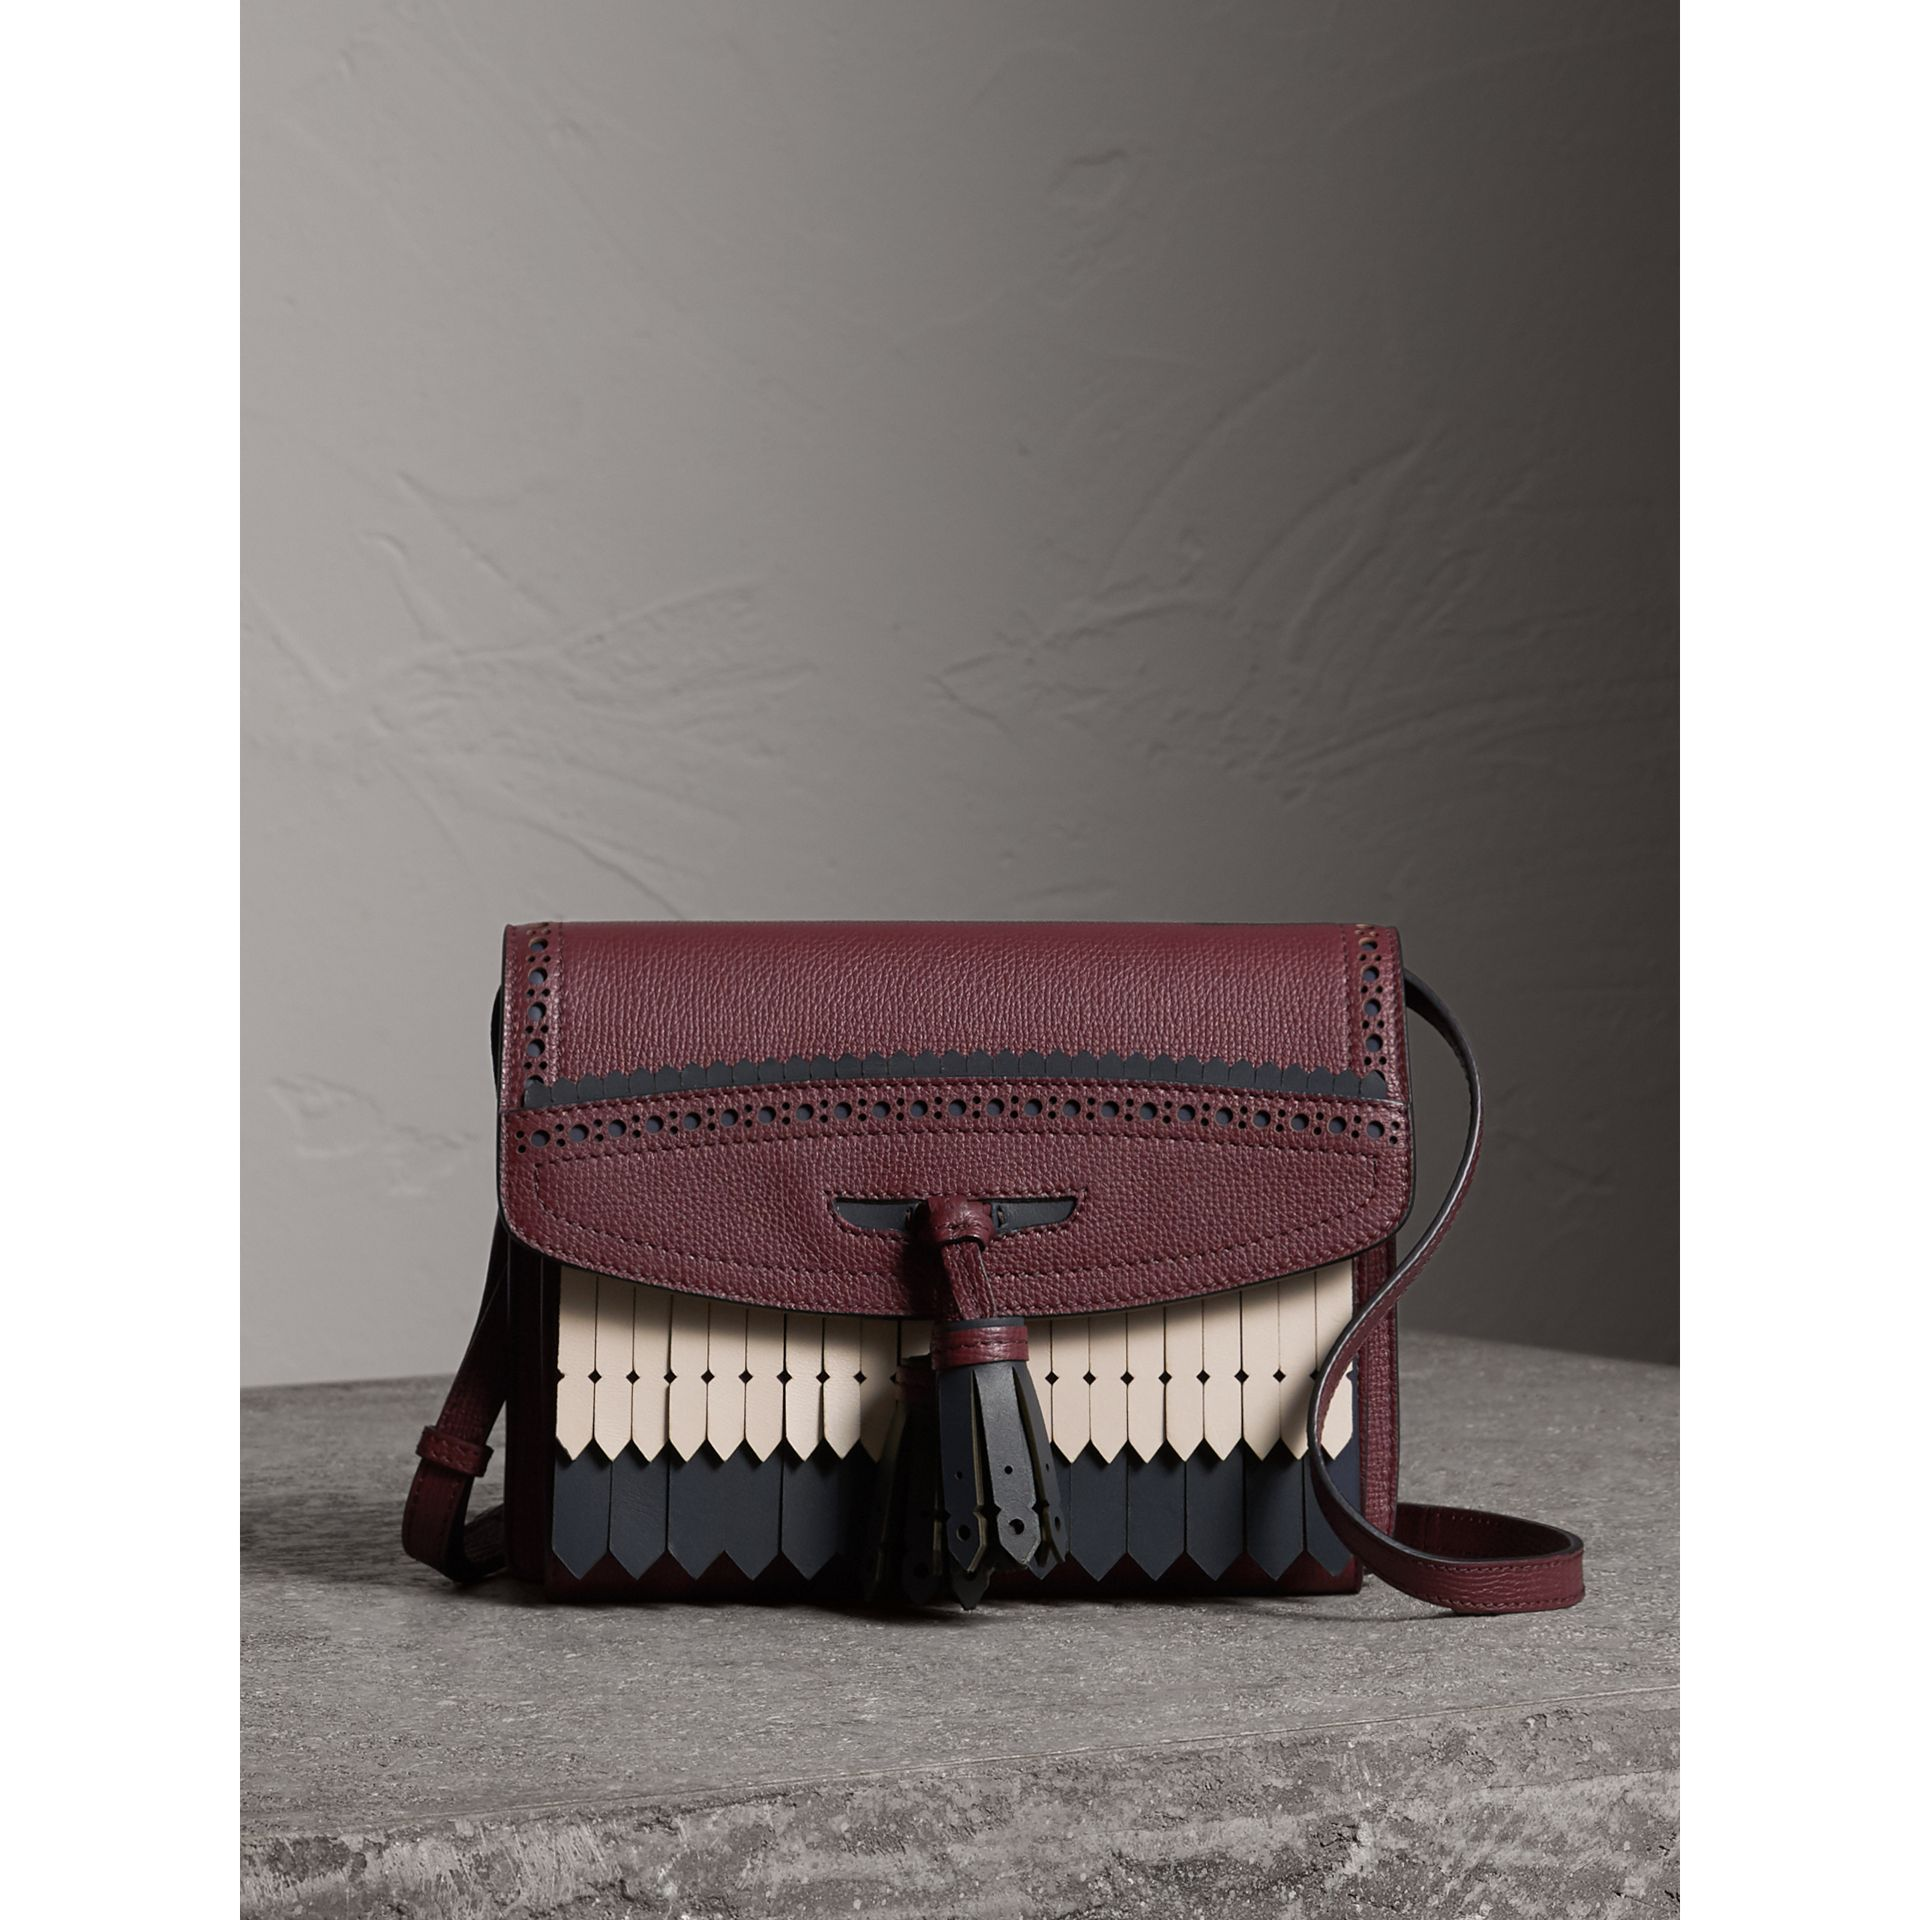 Brogue and Fringe Detail Leather Crossbody Bag in Mahogany Red - Women | Burberry Singapore - gallery image 0